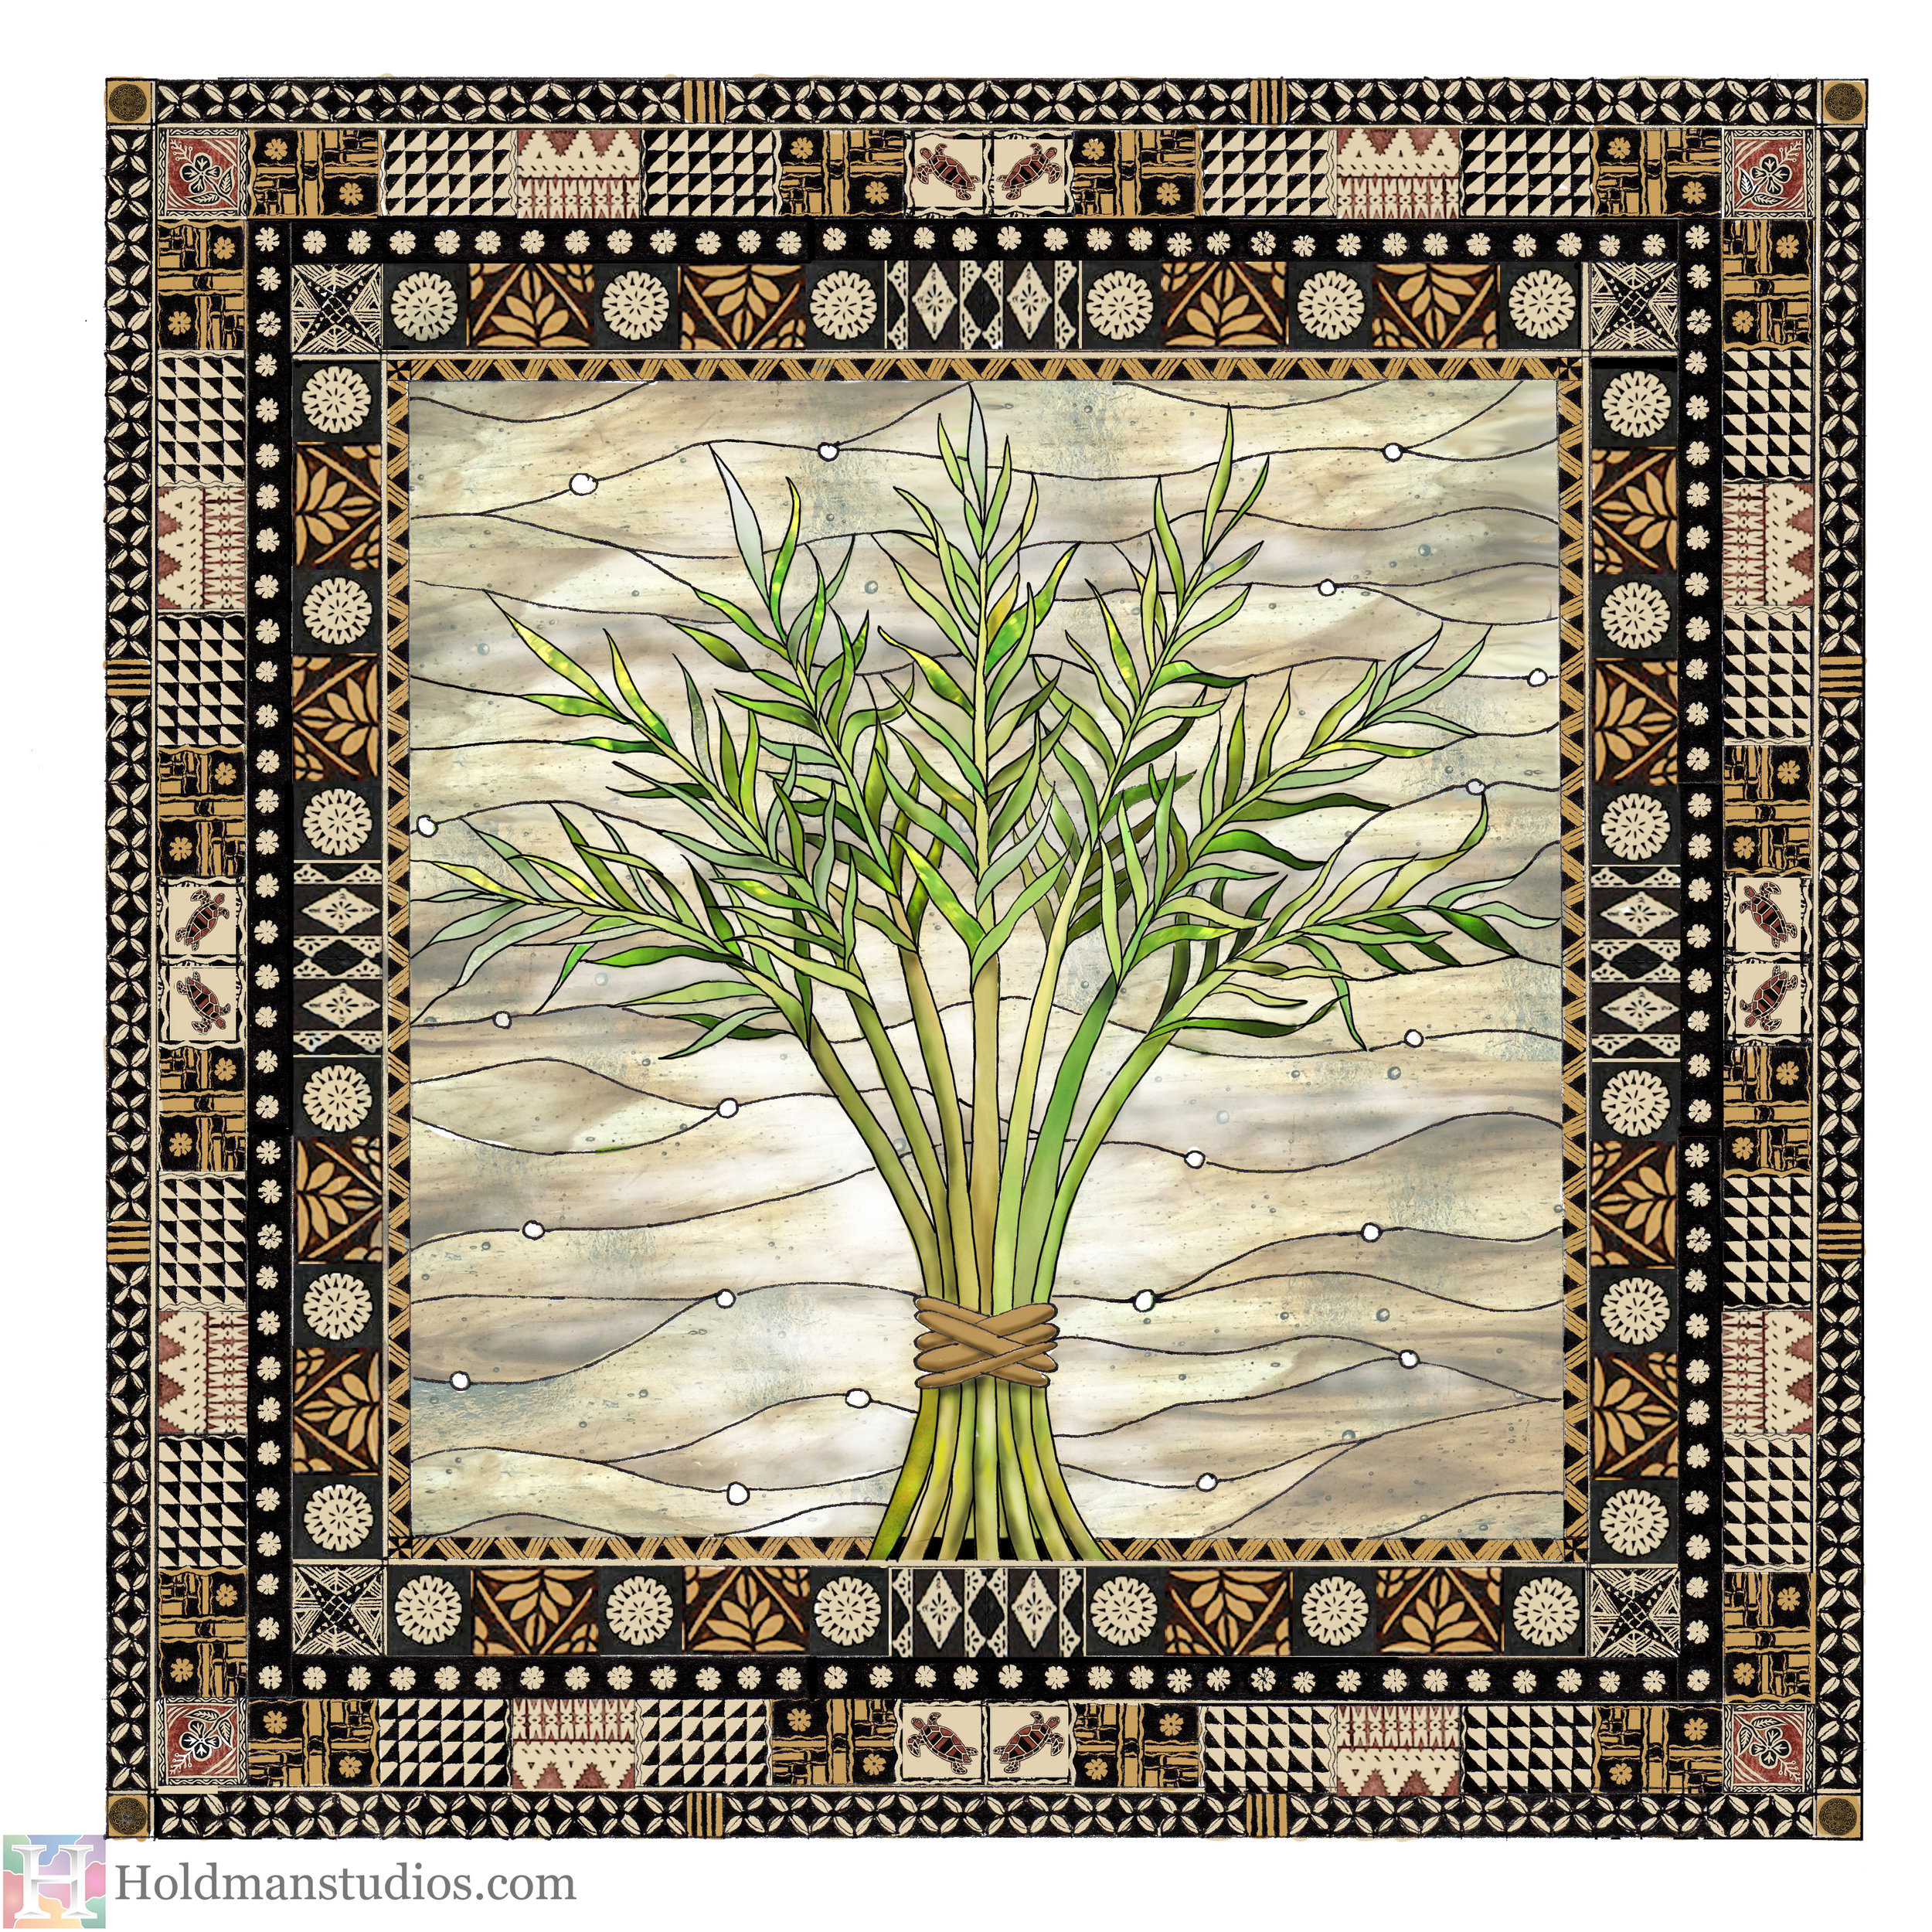 Holdman-Studios-Stained-Glass-Window-Harvest-Branches-Palm-Leaves-With-Border.jpg